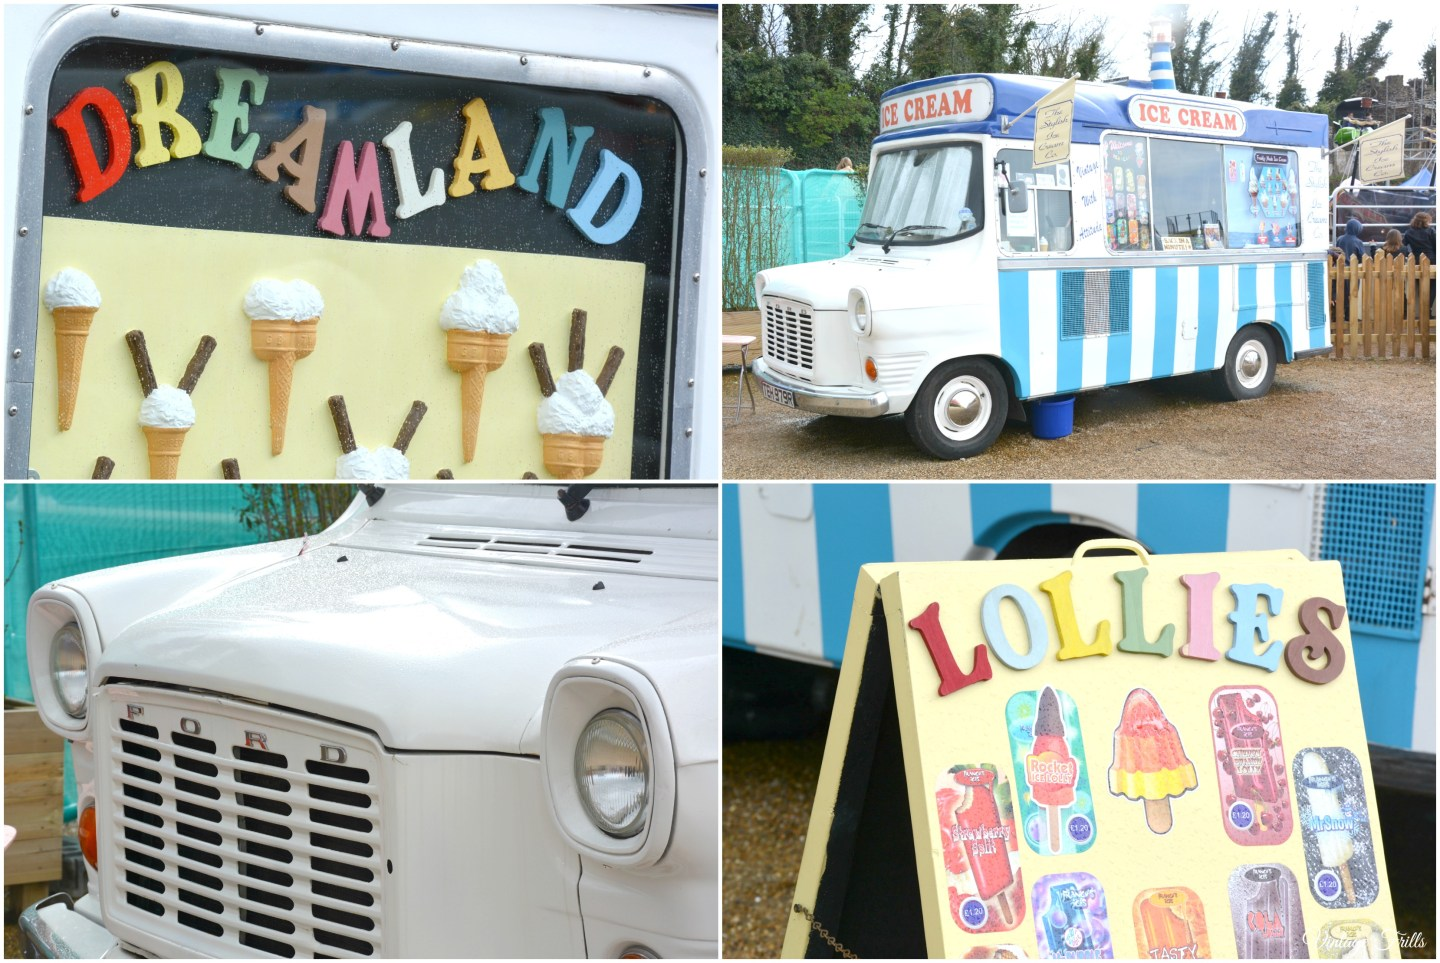 Dreamland Vintage Icecream Van